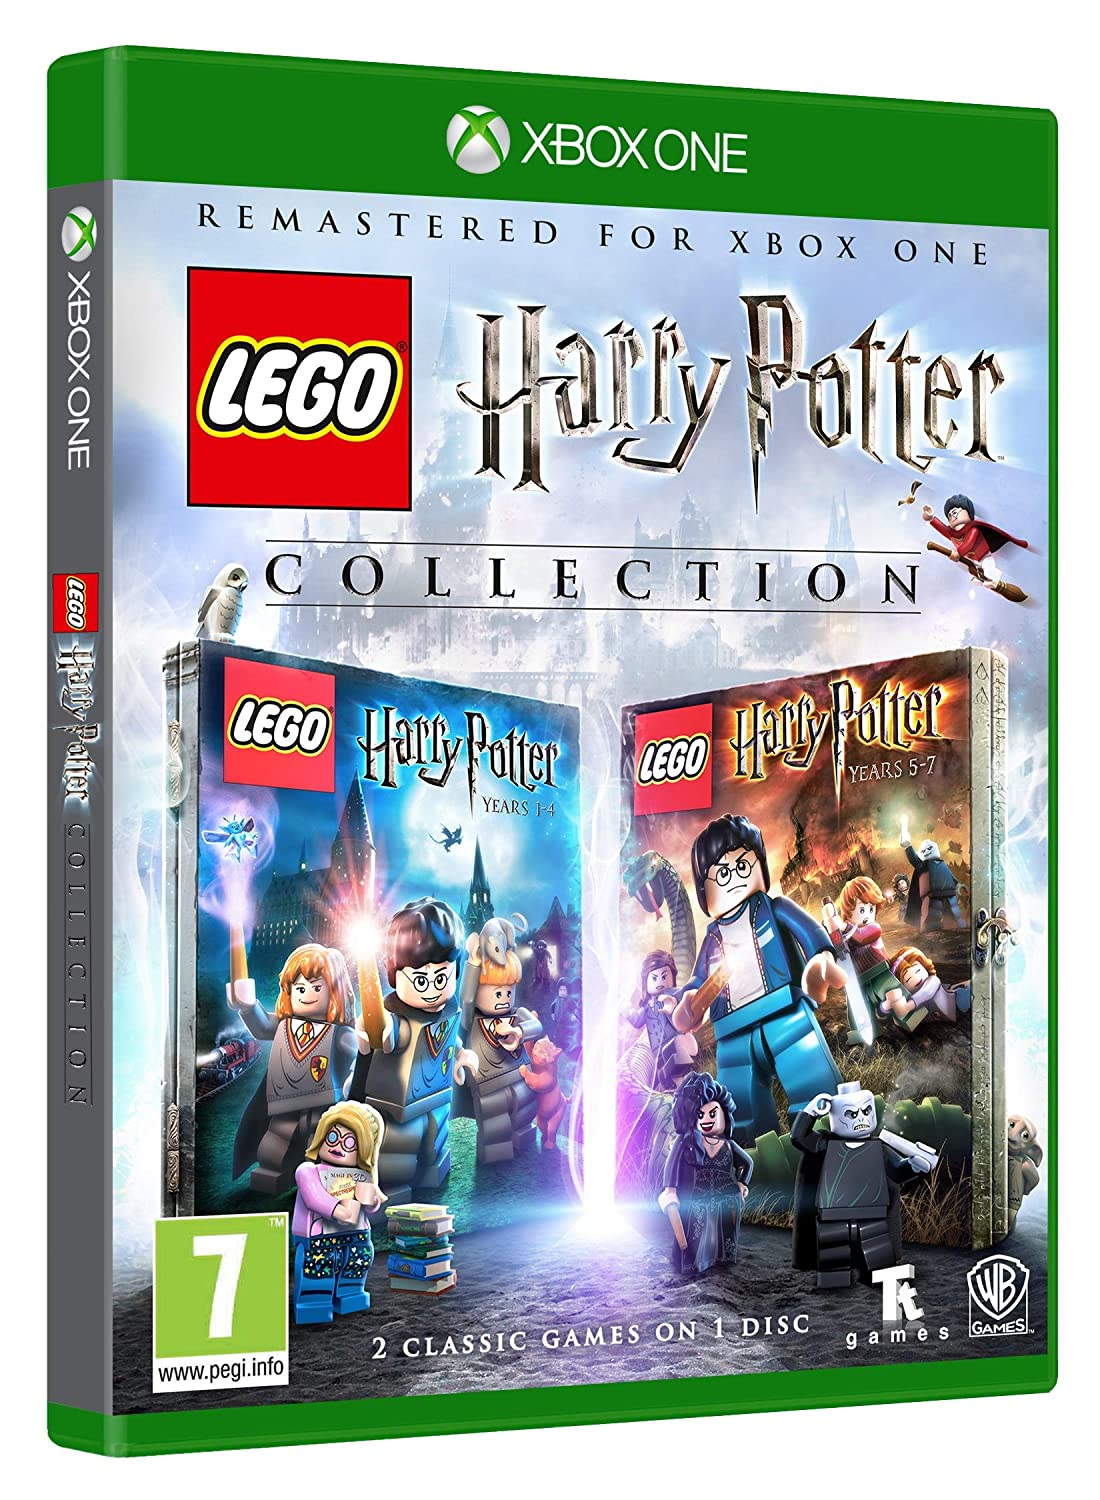 Lego Harry Potter Collection Years 1 4 & 5 7 Xbox1 Xbox One